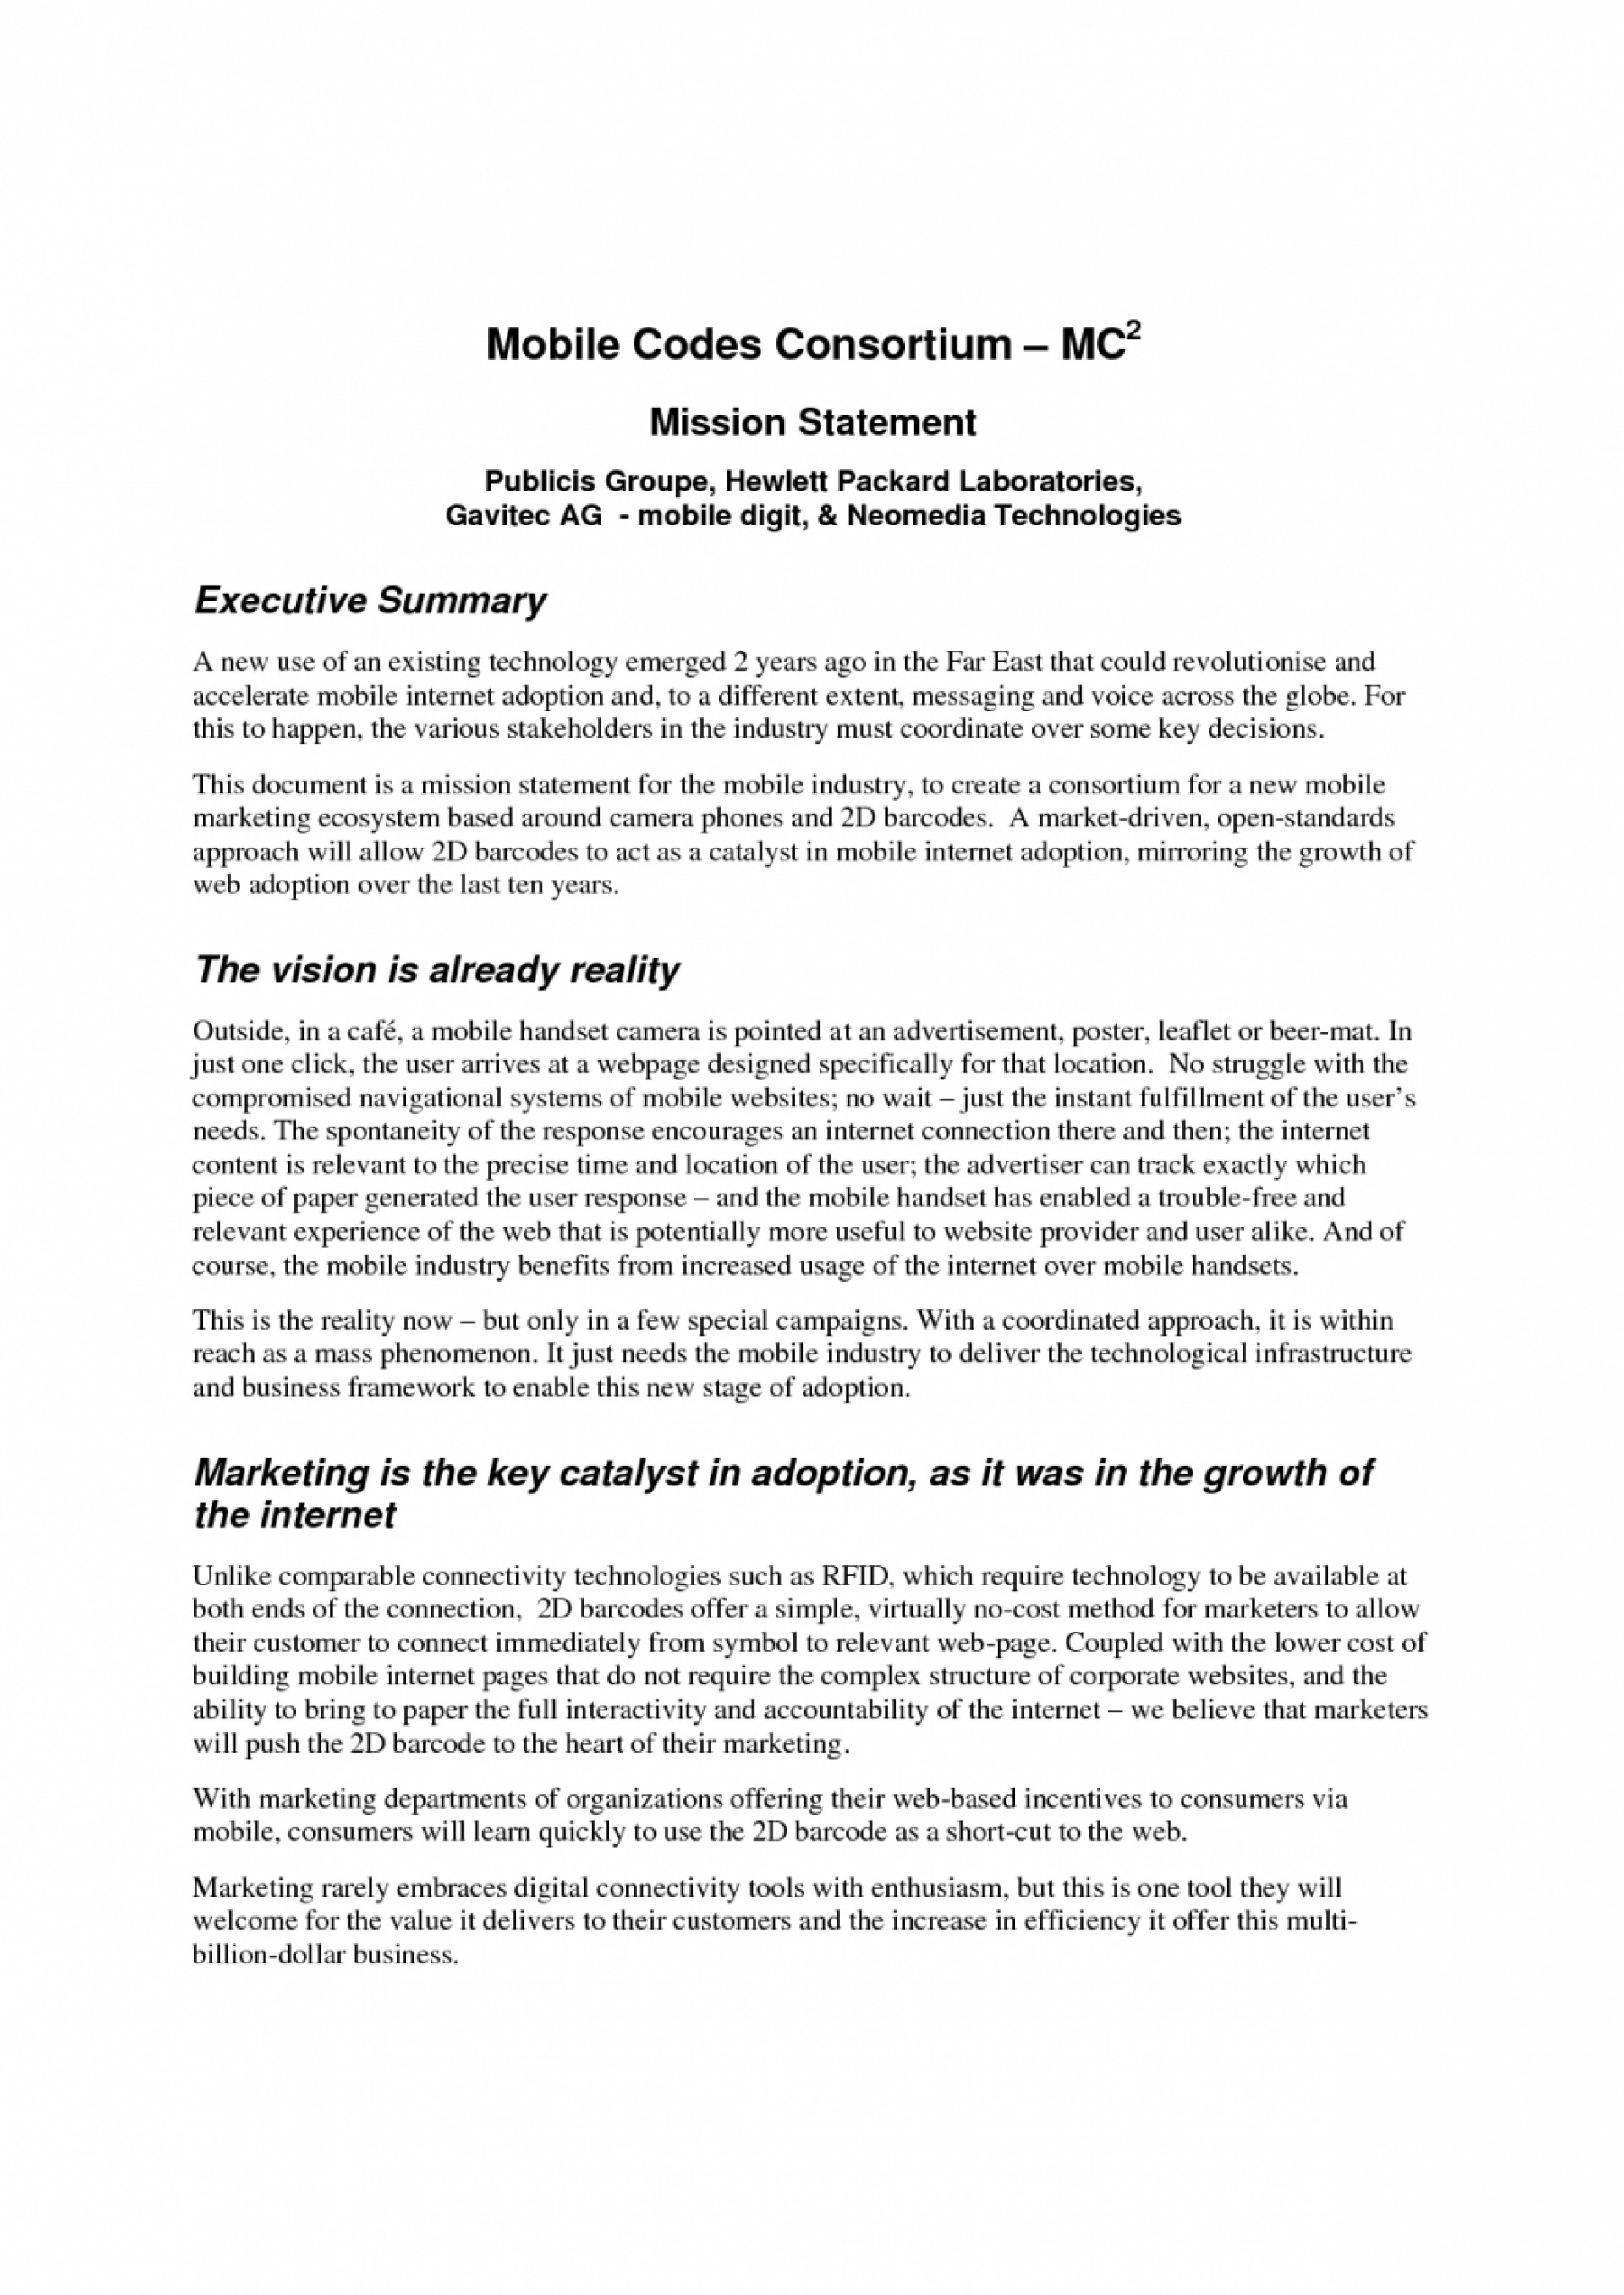 006 Argumentative Essay On Death Penalty Example Capital Punishment About The Arguments For Disney Mission Statement Template H1t Against Unbelievable Ideas Persuasive In Philippines Pro 1920